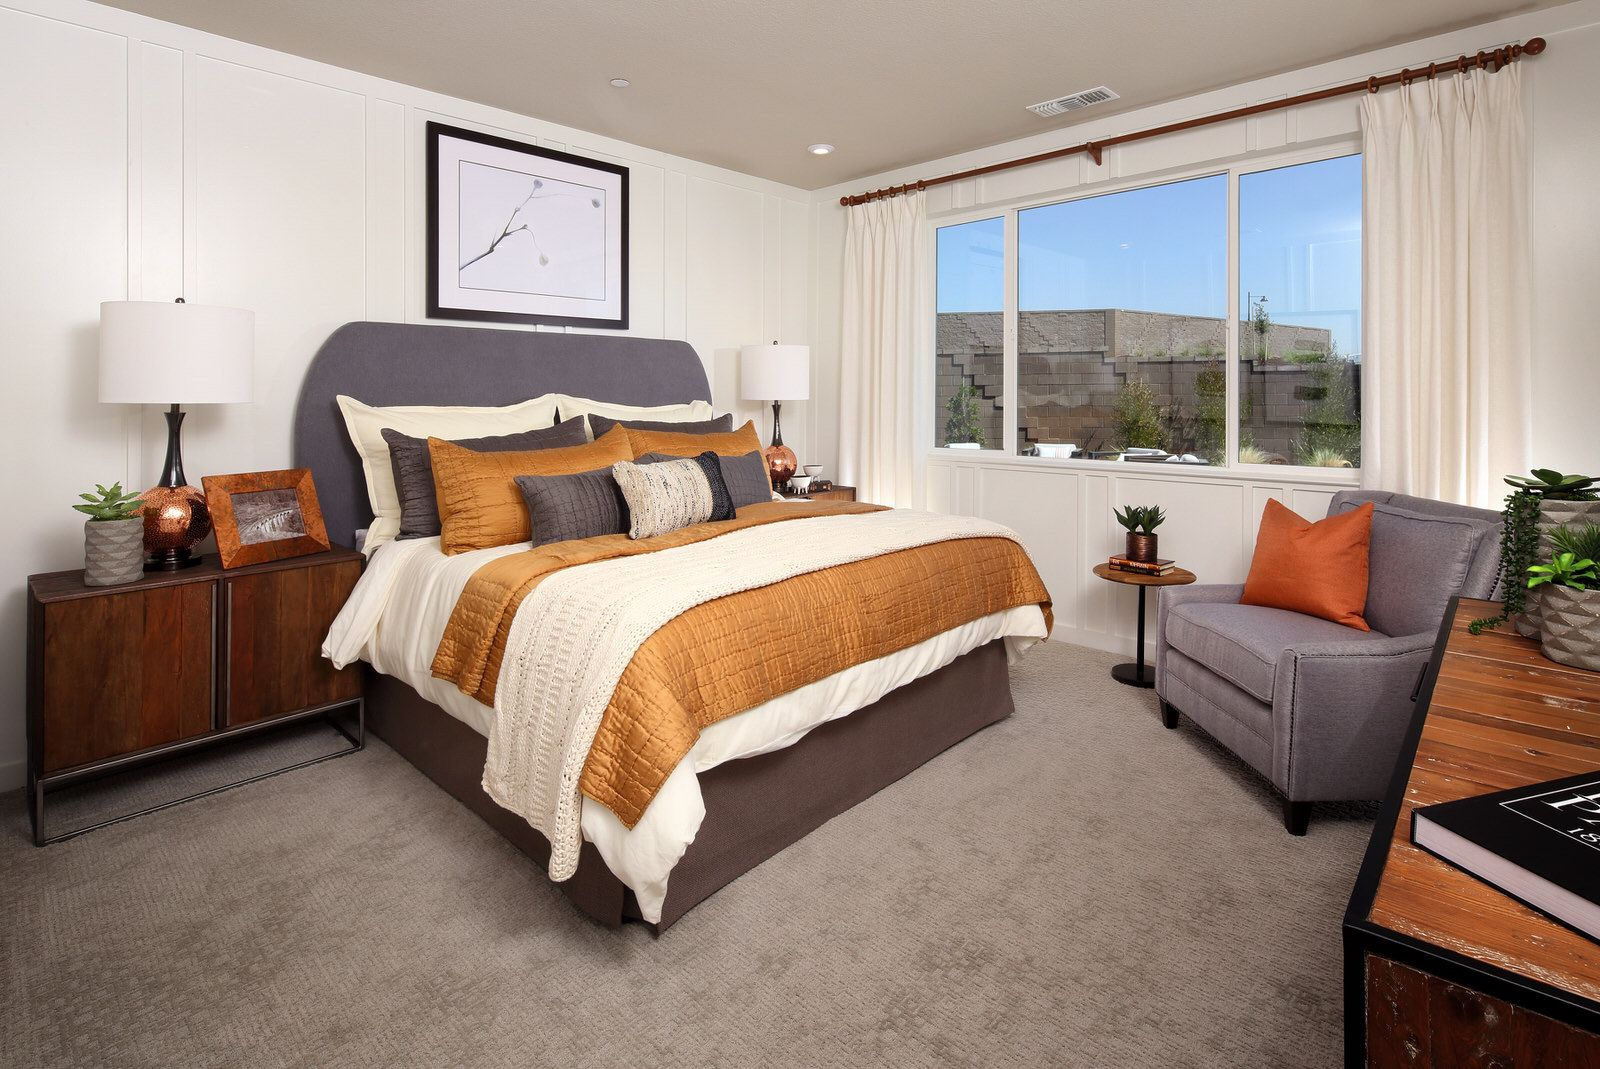 Bedroom featured in the Plan 6 Forest Plan By Taylor Morrison in Sacramento, CA